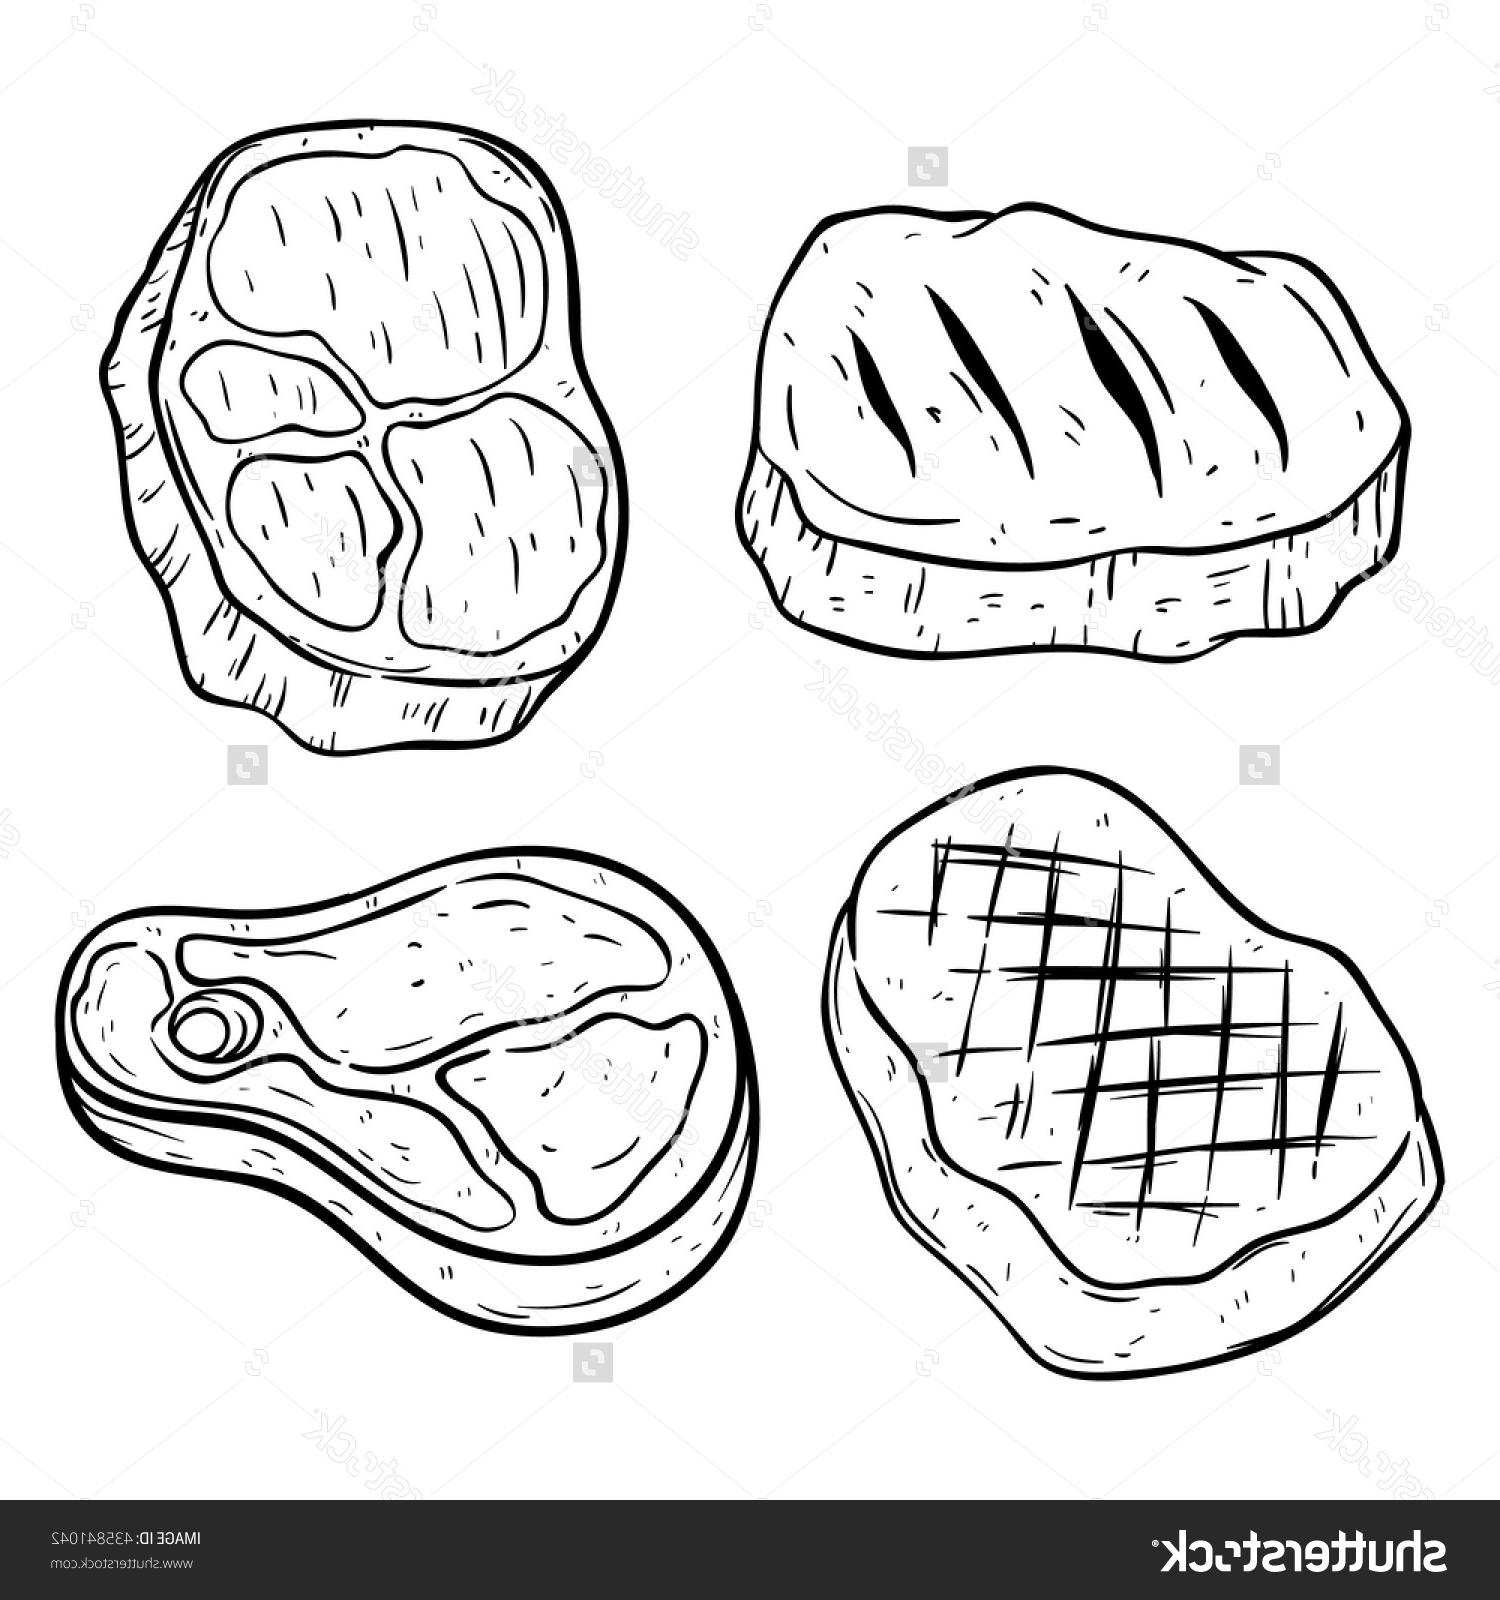 1500x1600 Hd Stock Vector Set Of Beef Steak With Hand Drawing Or Line Art